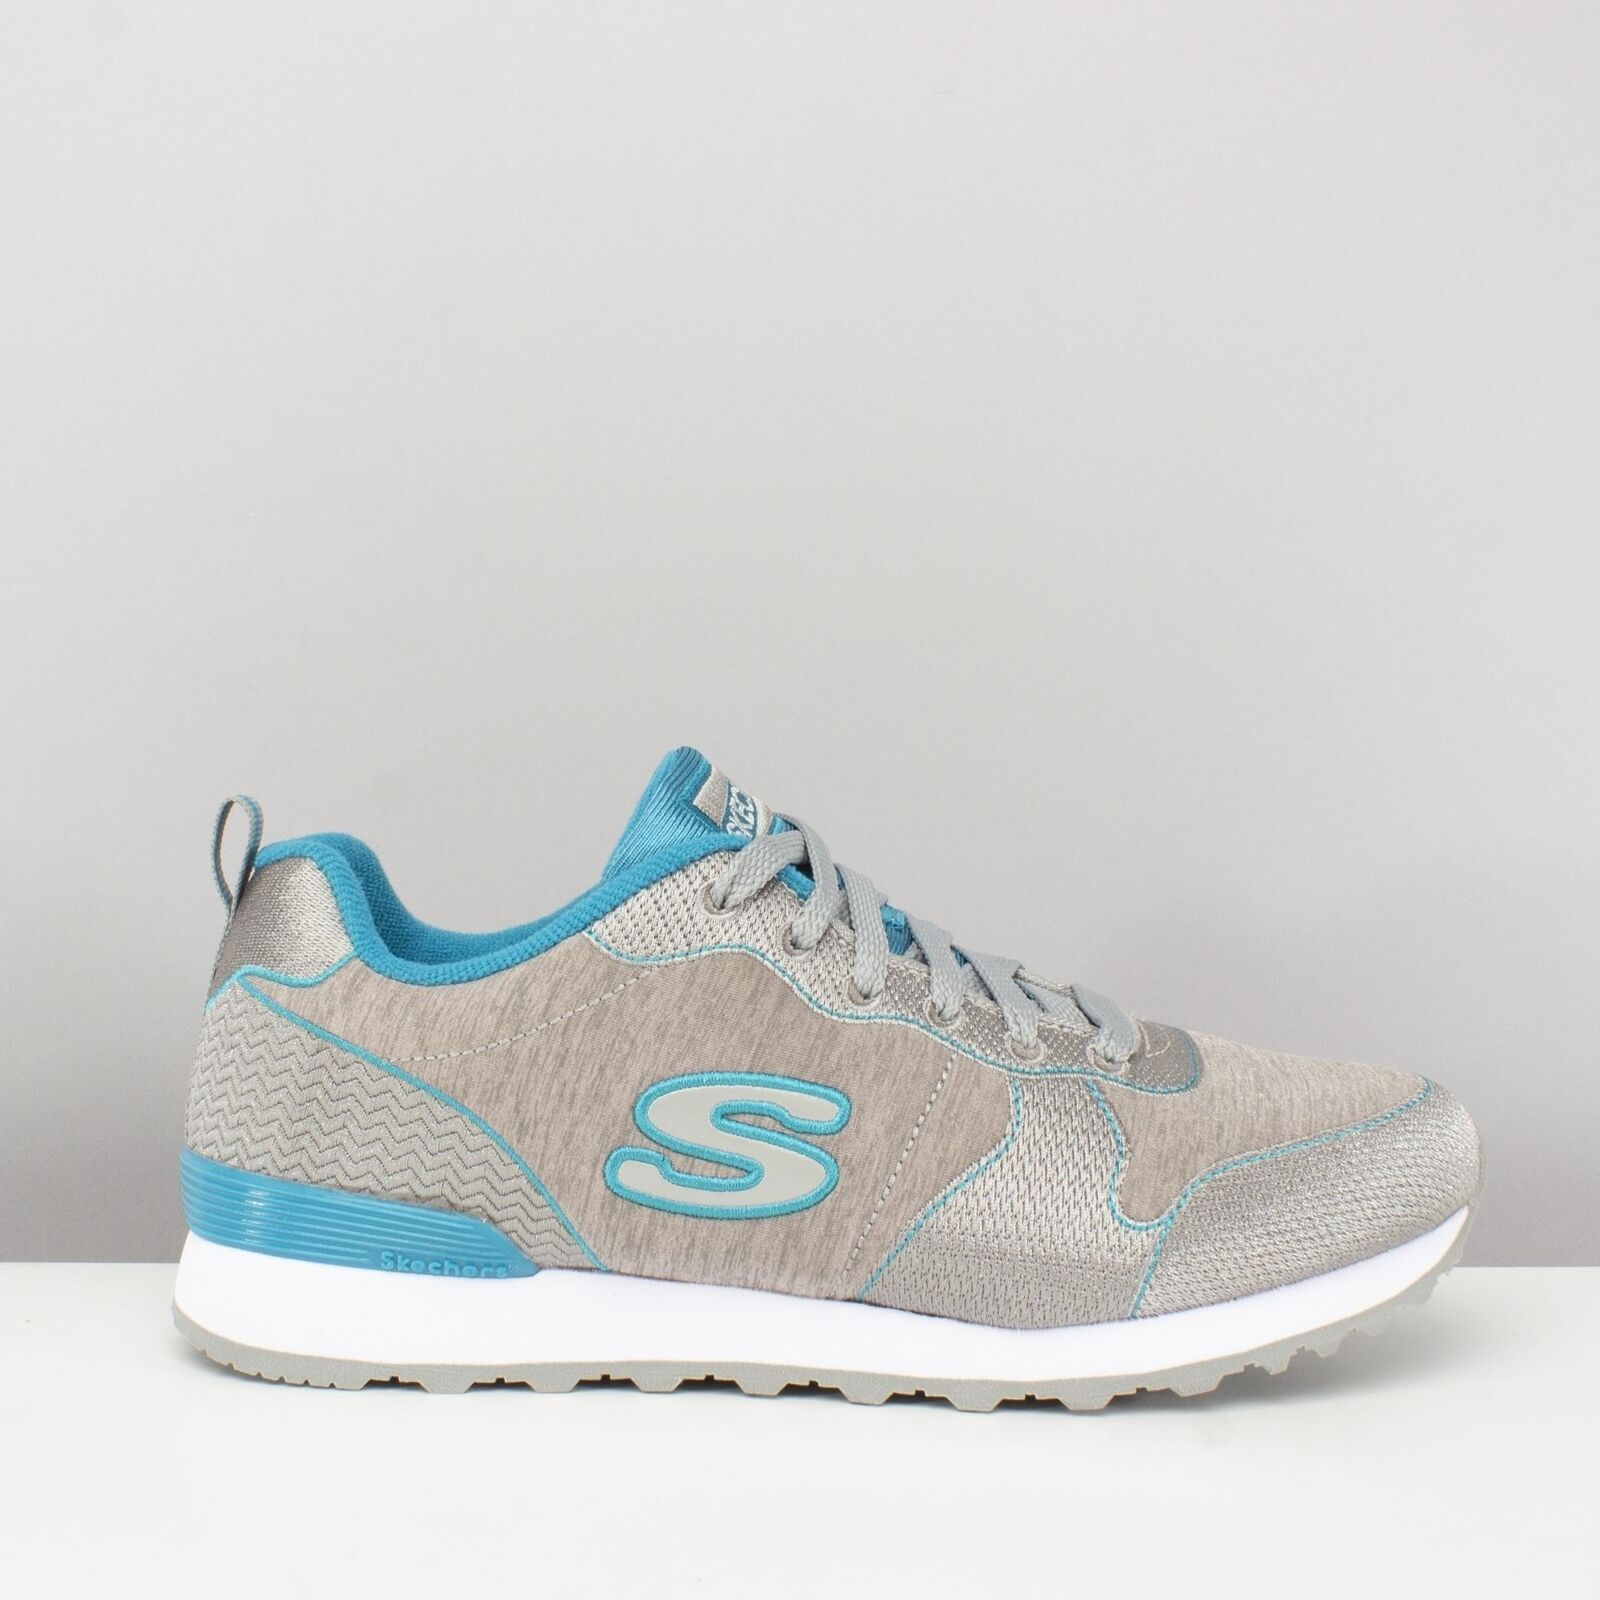 Skechers OG 85-QUICK STITCH Ladies Womens Womens Womens Retro Sport Fitness Trainers Grey bluee b8ed6f